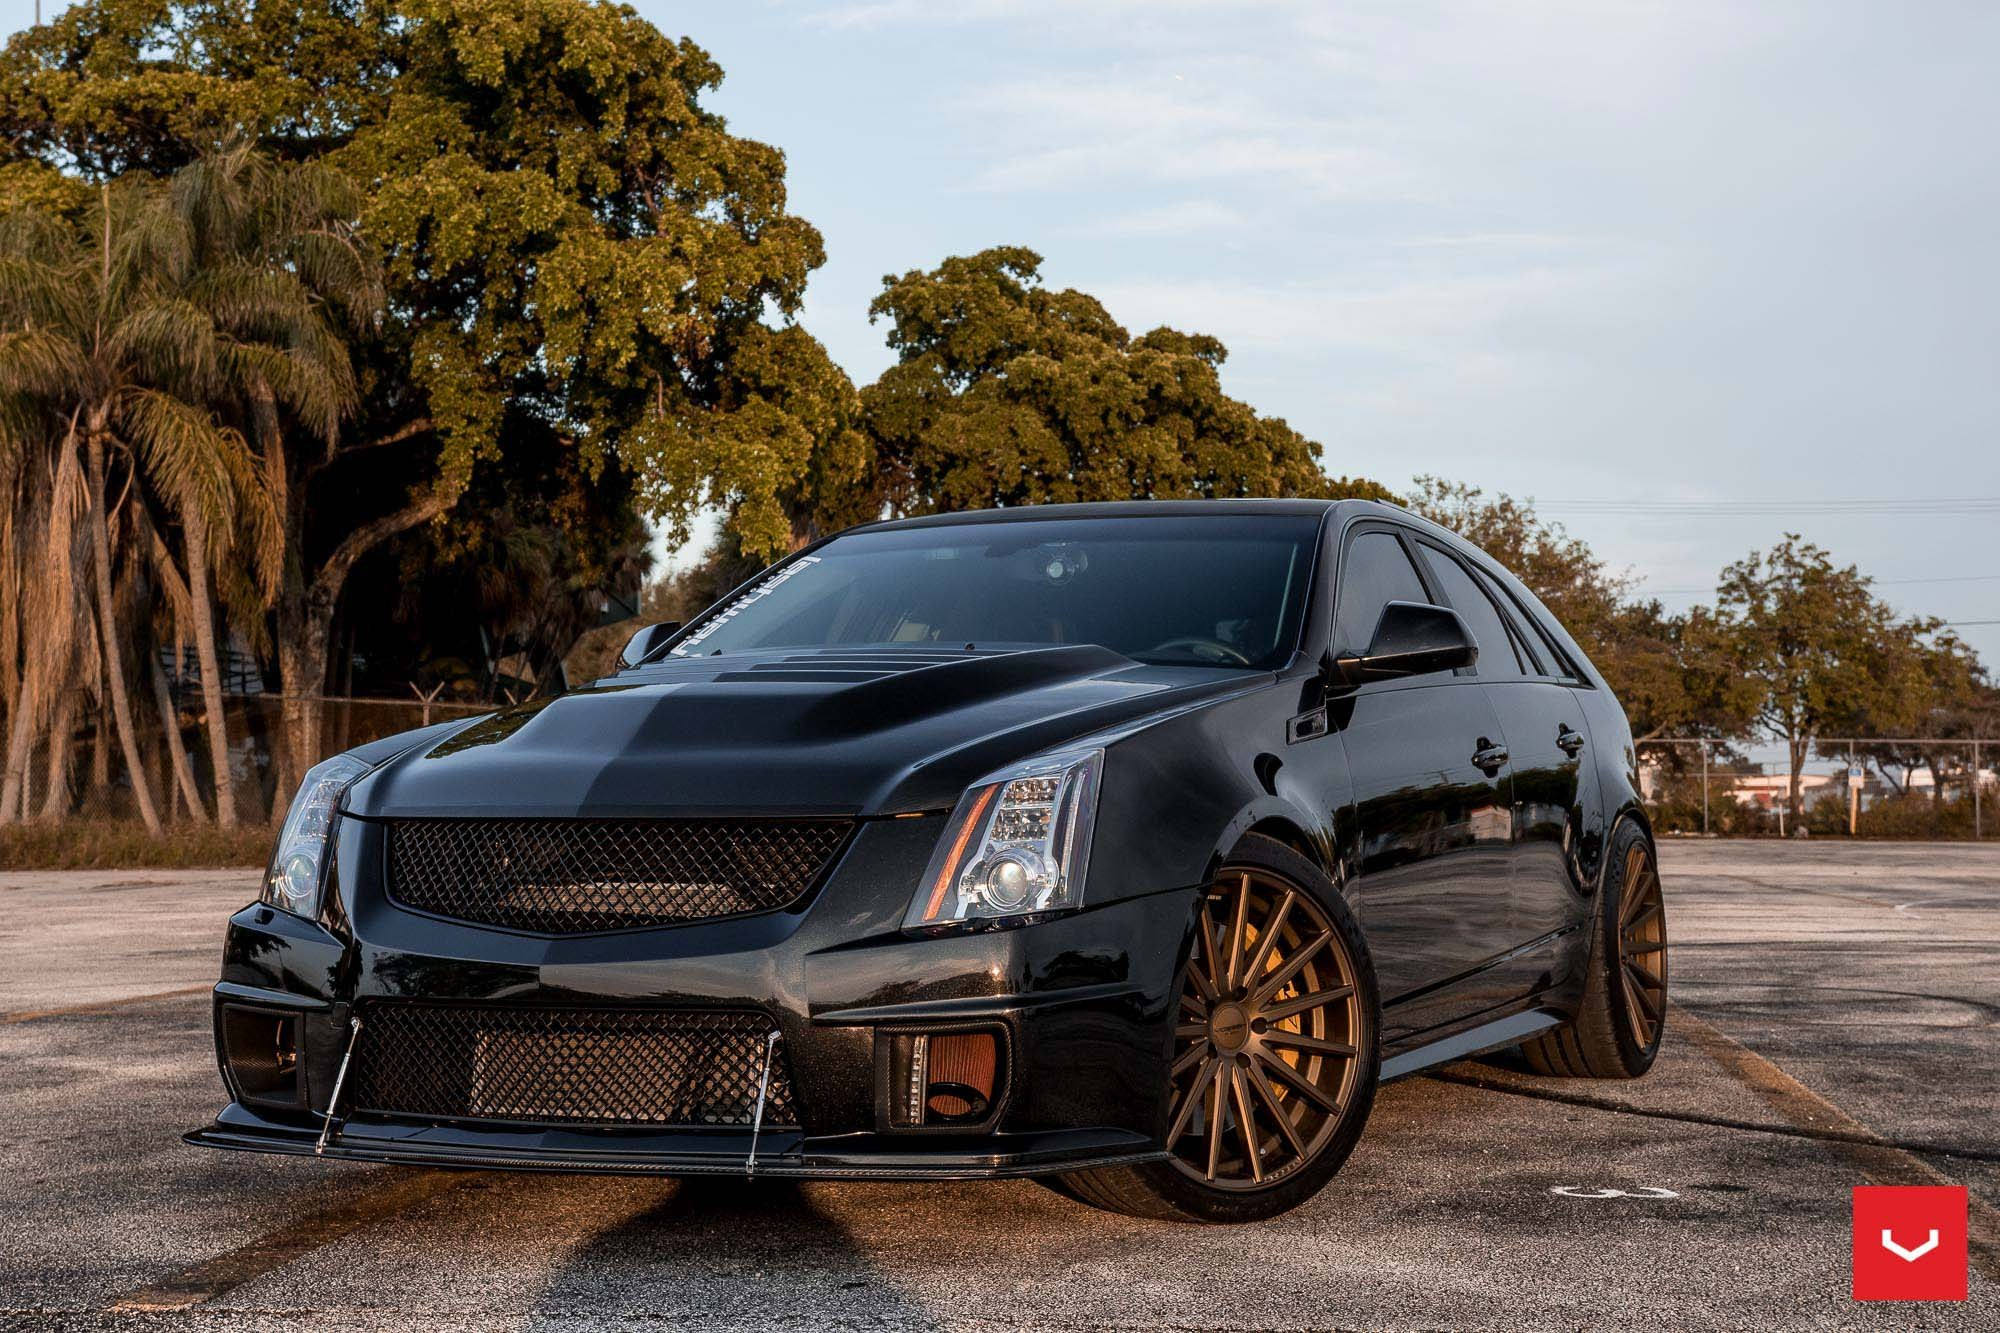 on sleepyvsport favorite brought springs our v custom back instagram with lower cts to swift cadillac cadillaccts n